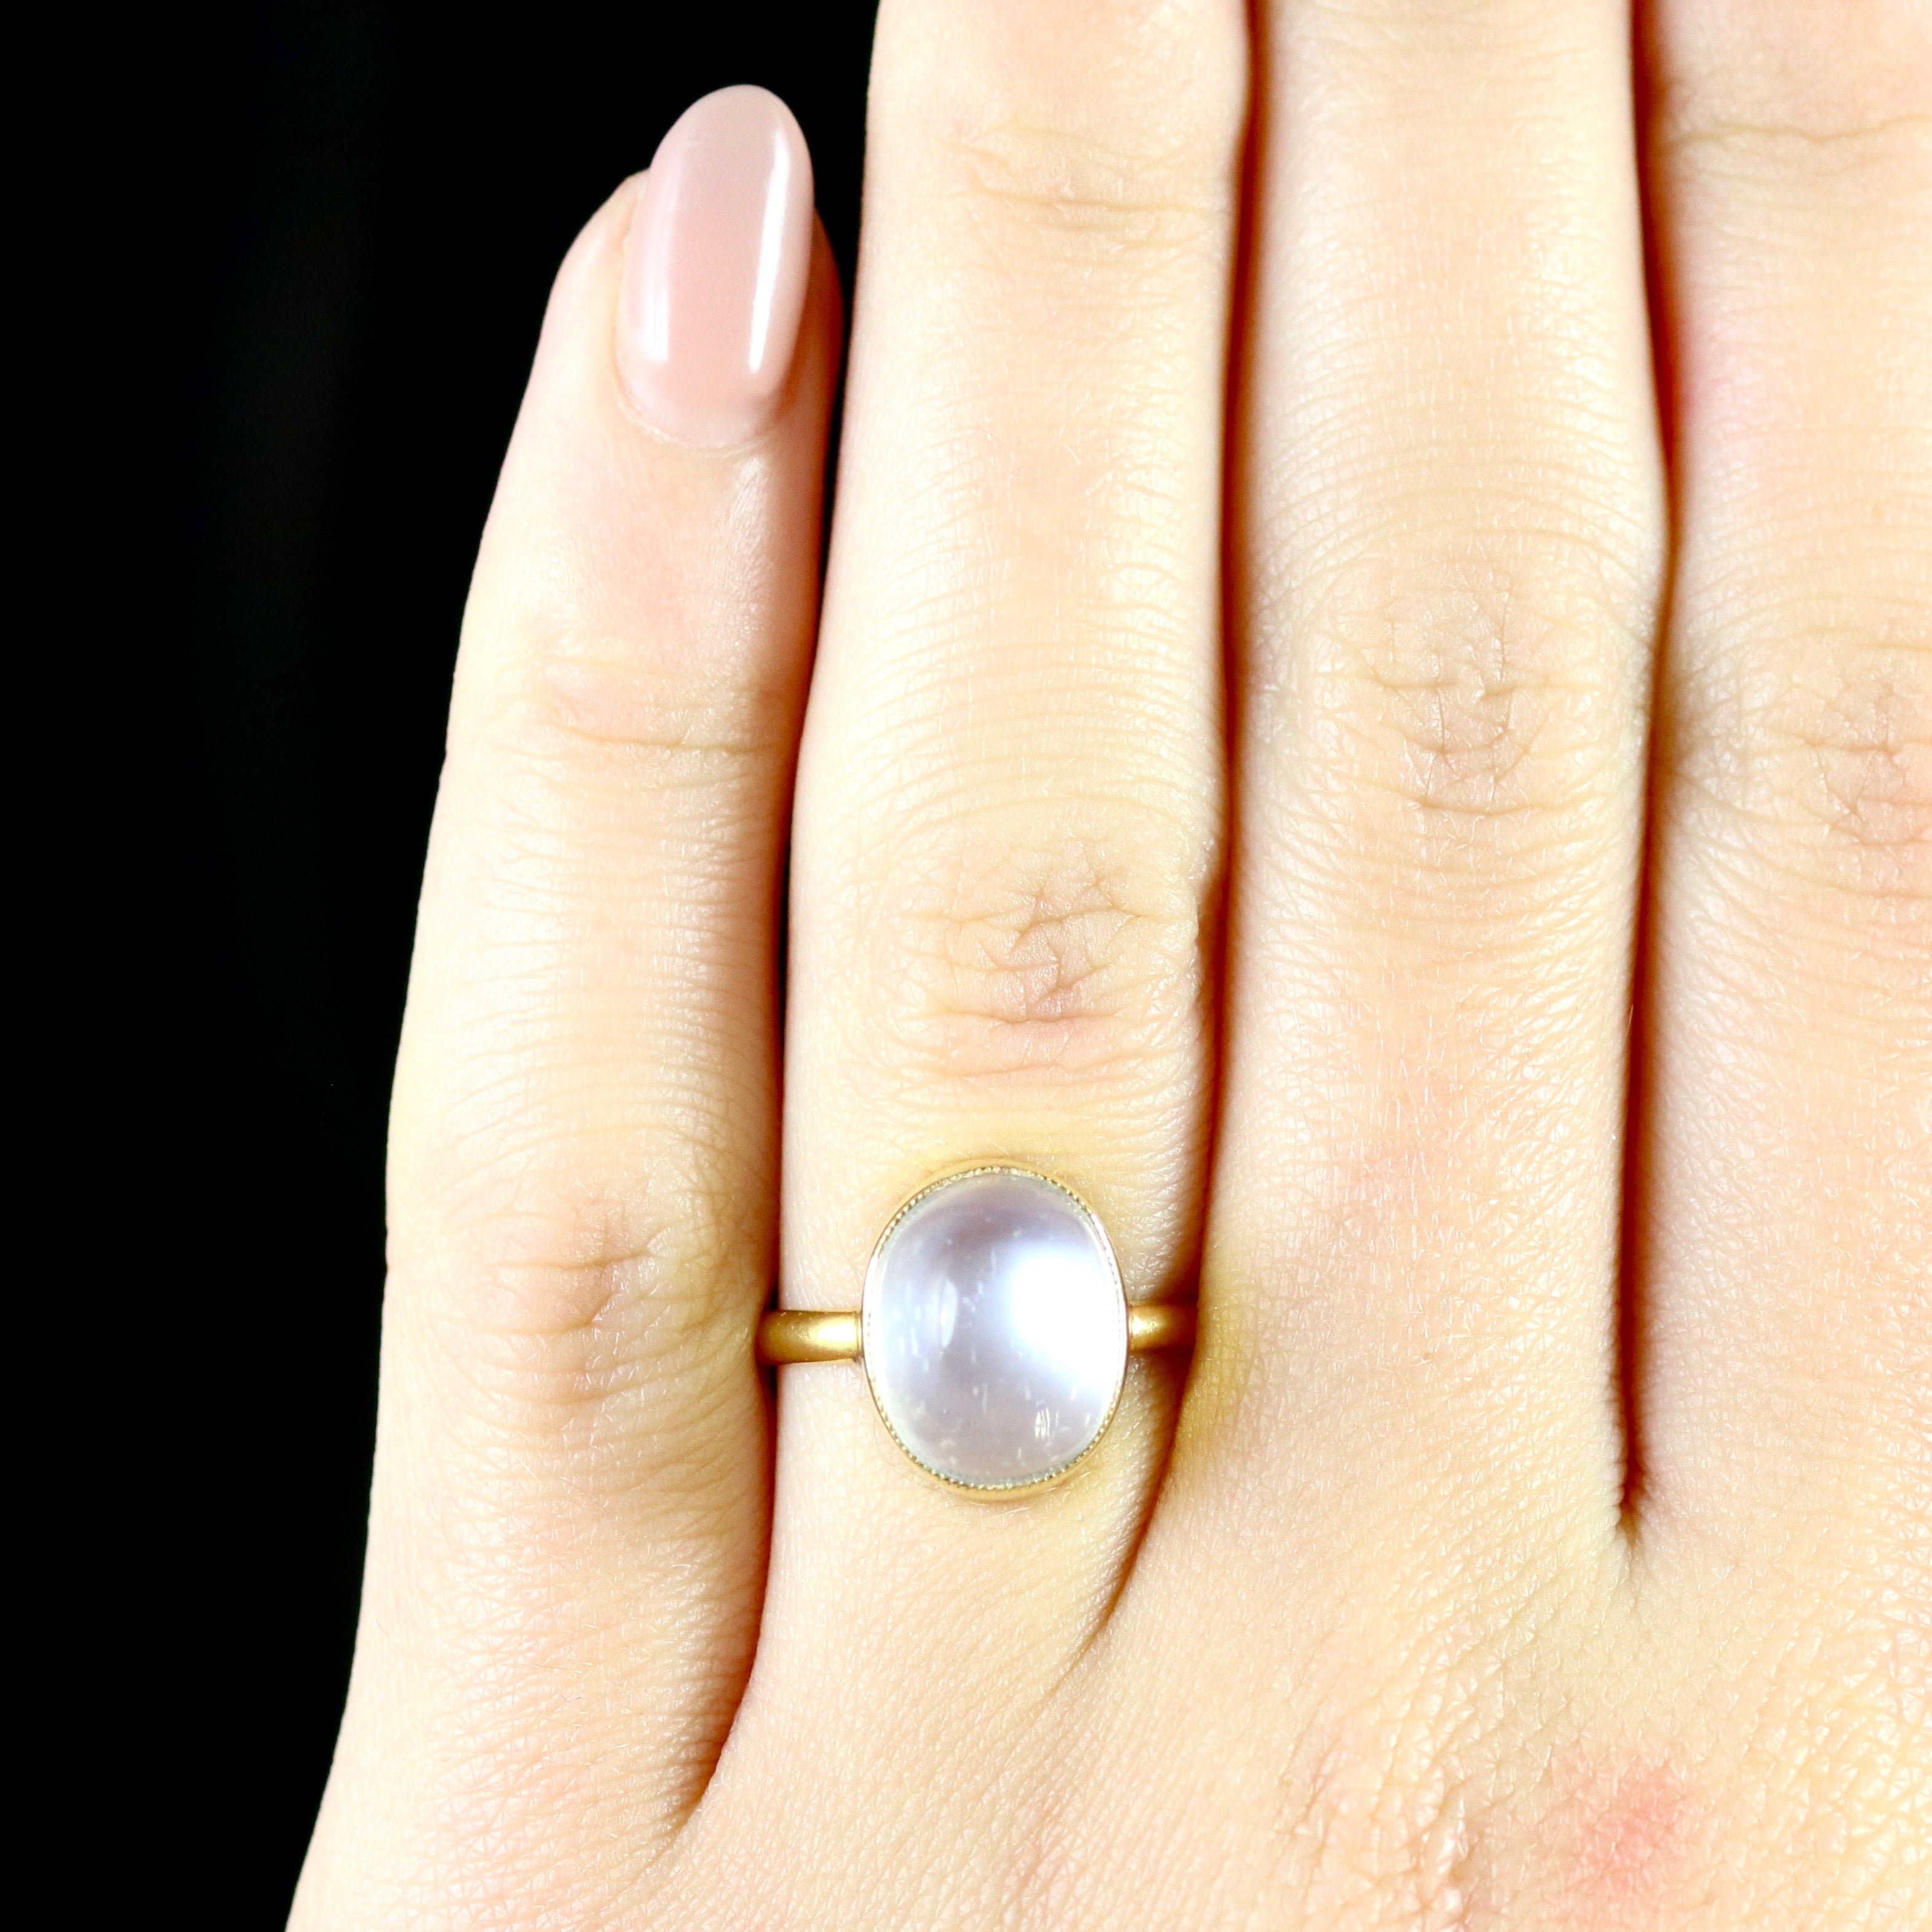 concept ring peach rings new wedding moonstone of